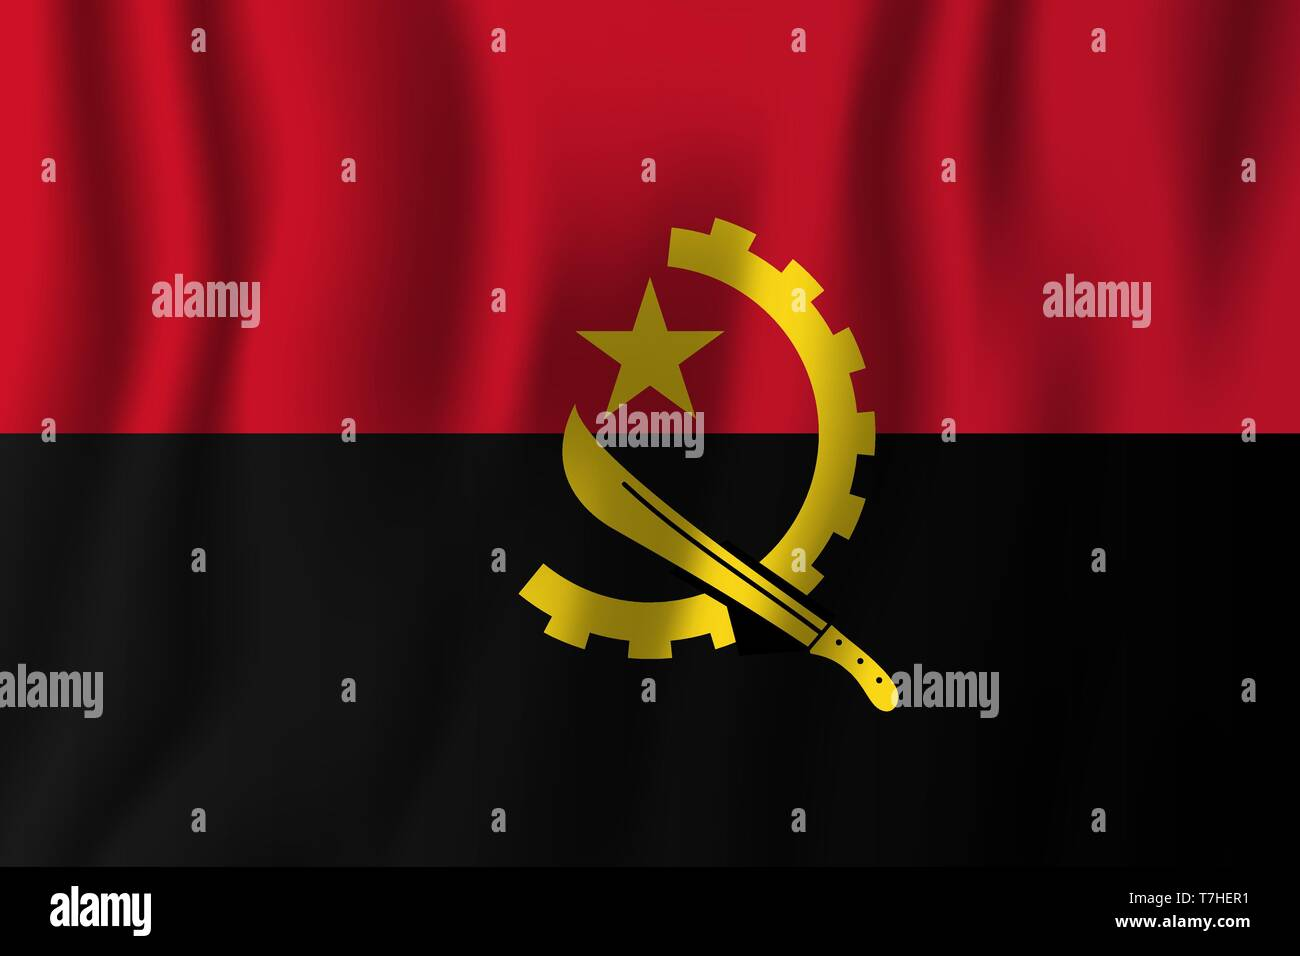 Angola realistic waving flag vector illustration. National country background symbol. Independence day. - Stock Vector